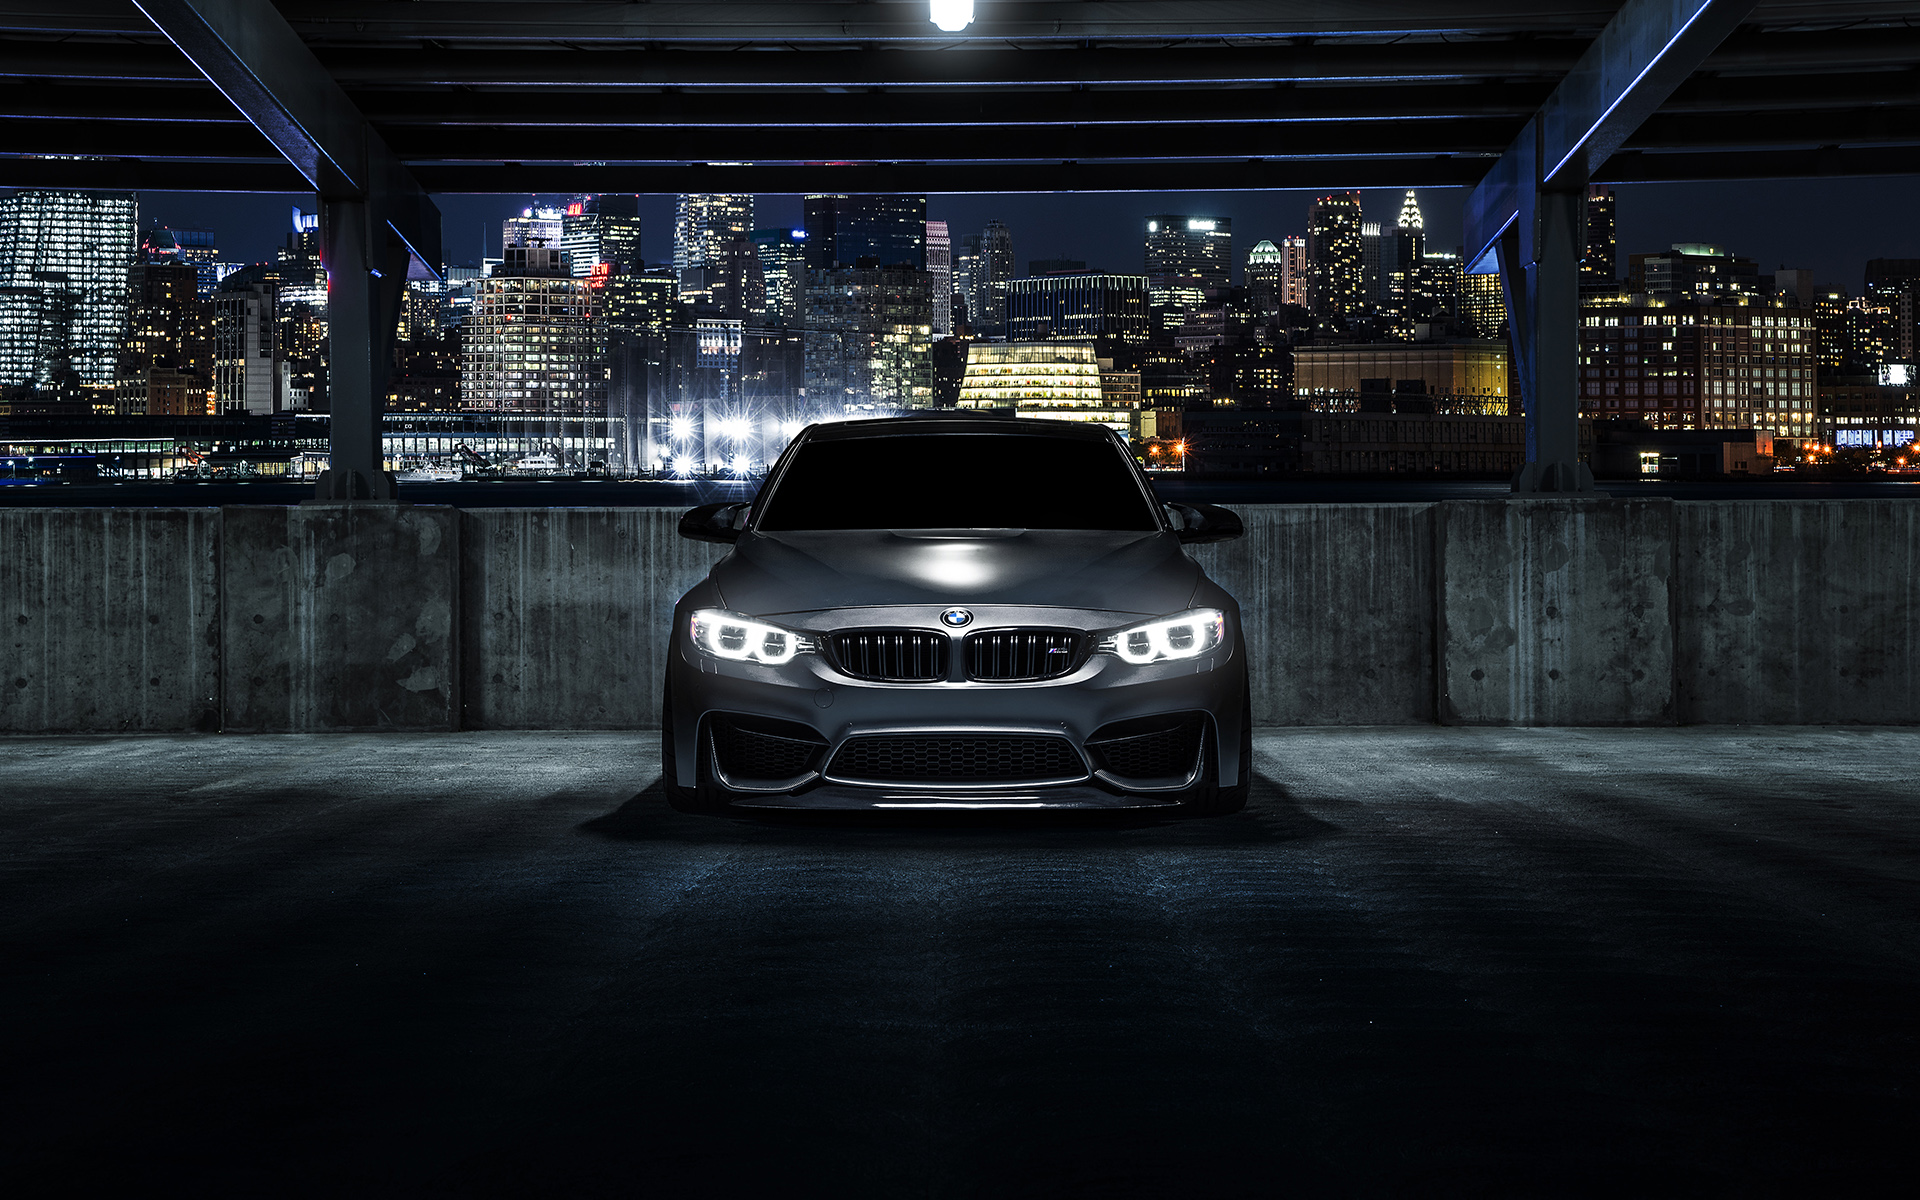 BMW M3 Mode Carbon Sonic Motorsport Wallpaper | HD Car Wallpapers